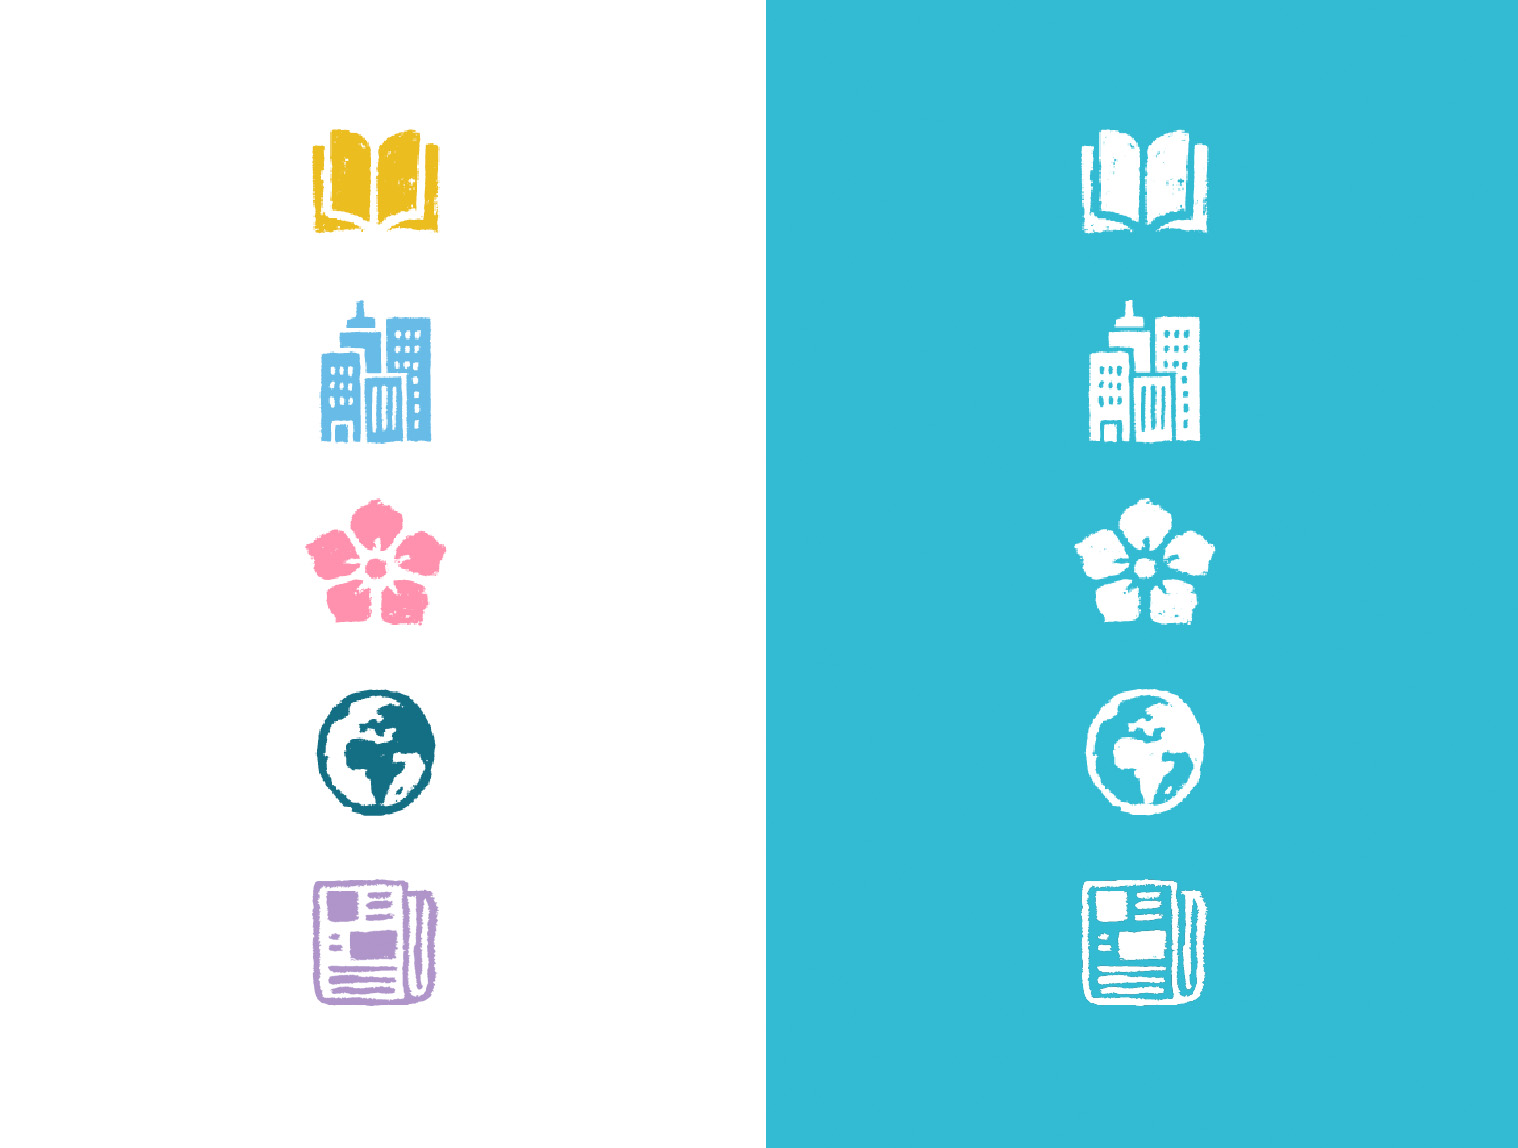 The main category icons for both white background as well as negative white versions to be used over blue background.